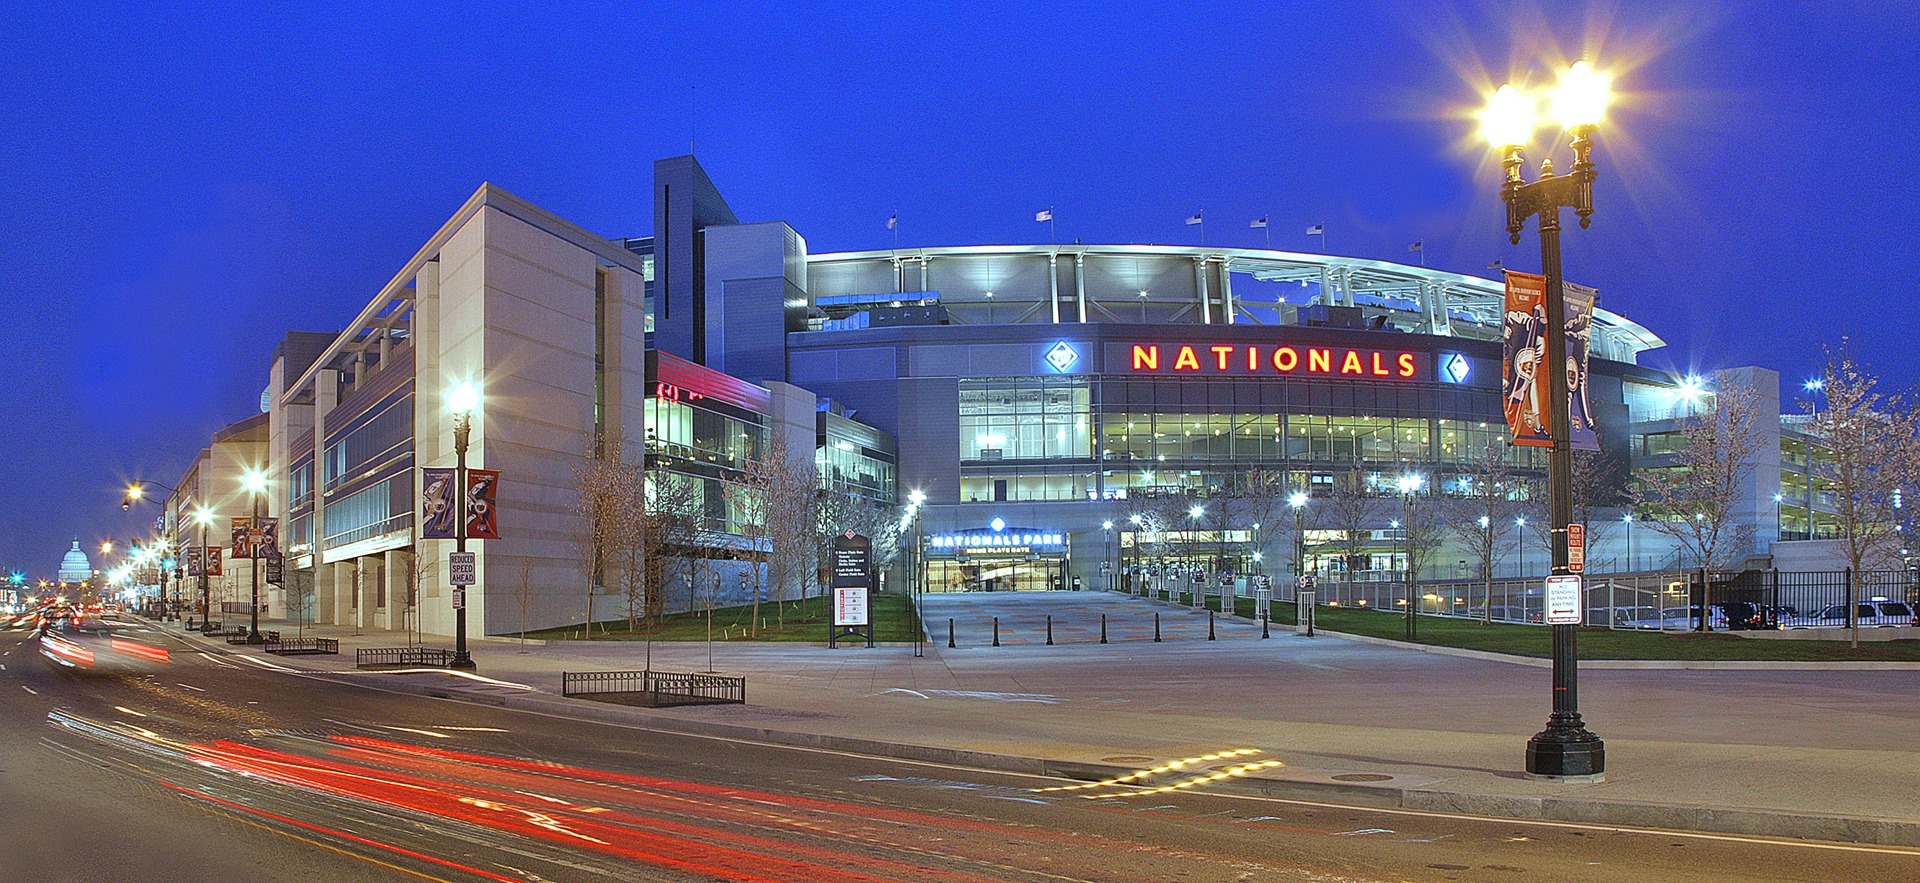 Washington Nationals Baseball Park, Washington, DC